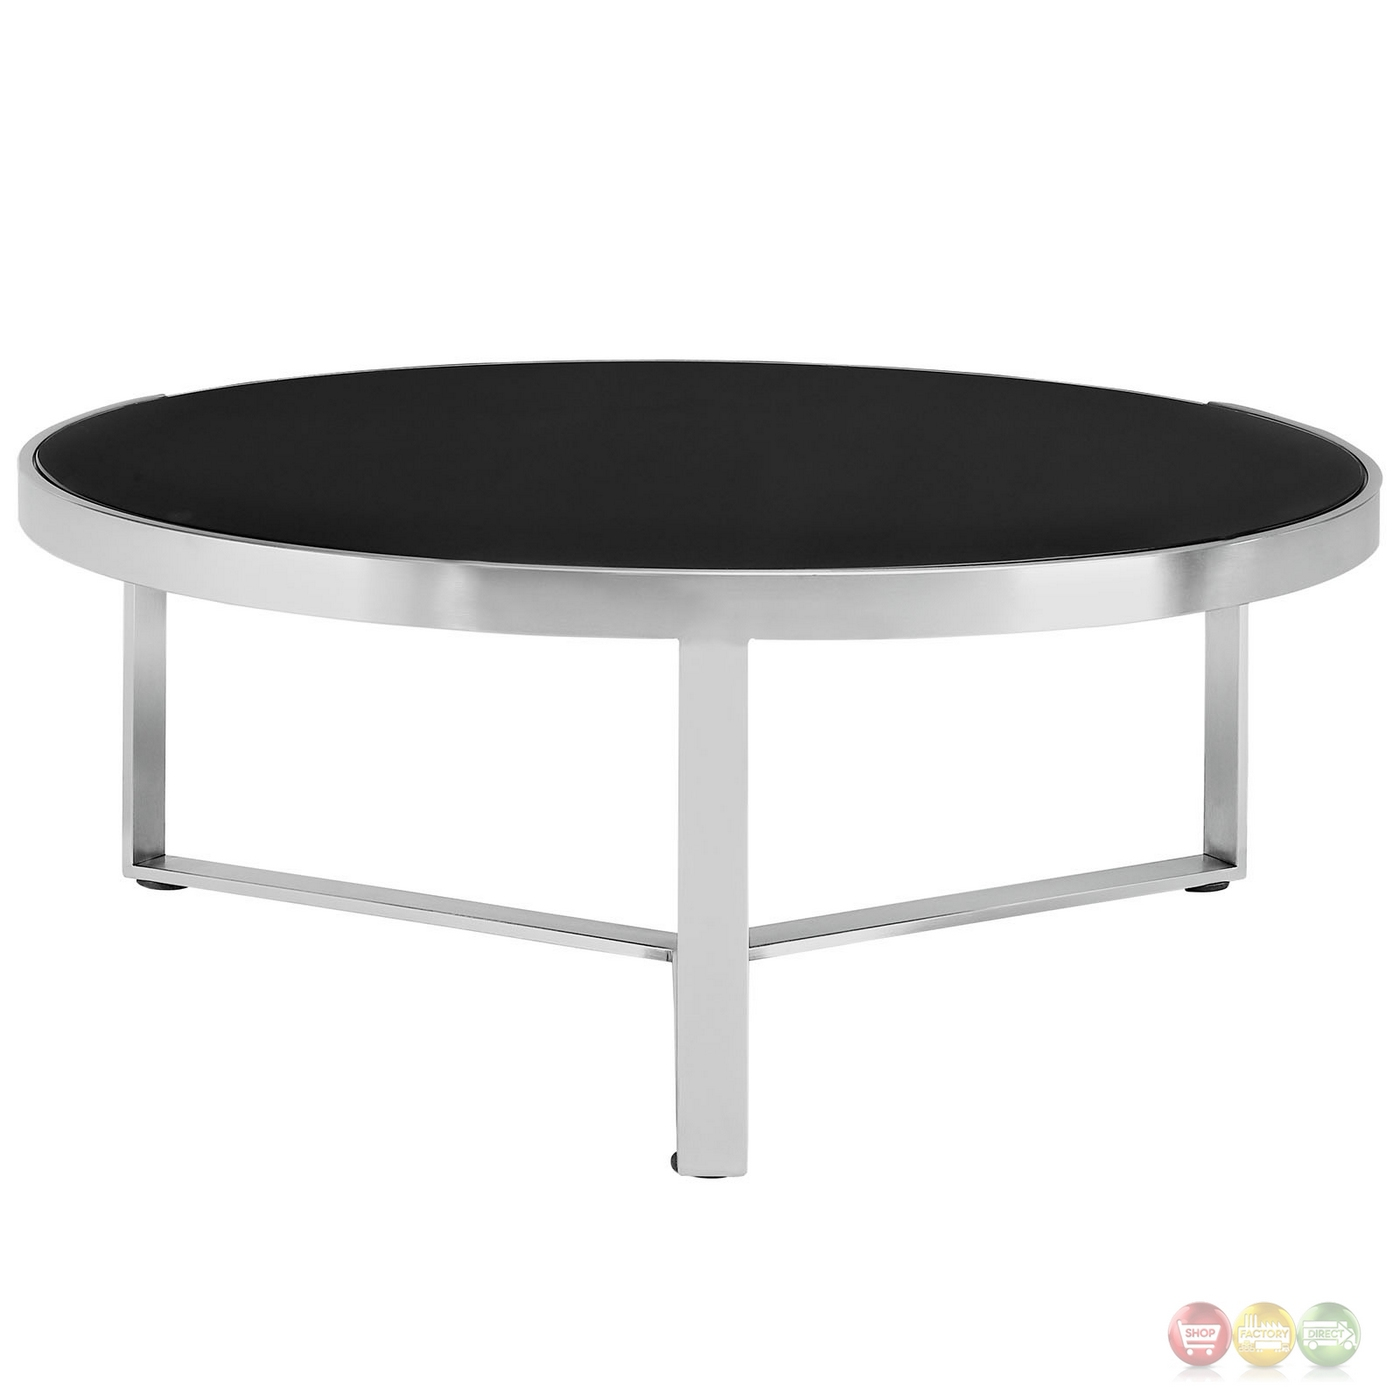 Disk industrial glass top round coffee table w stainless steel base black Metal glass top coffee table